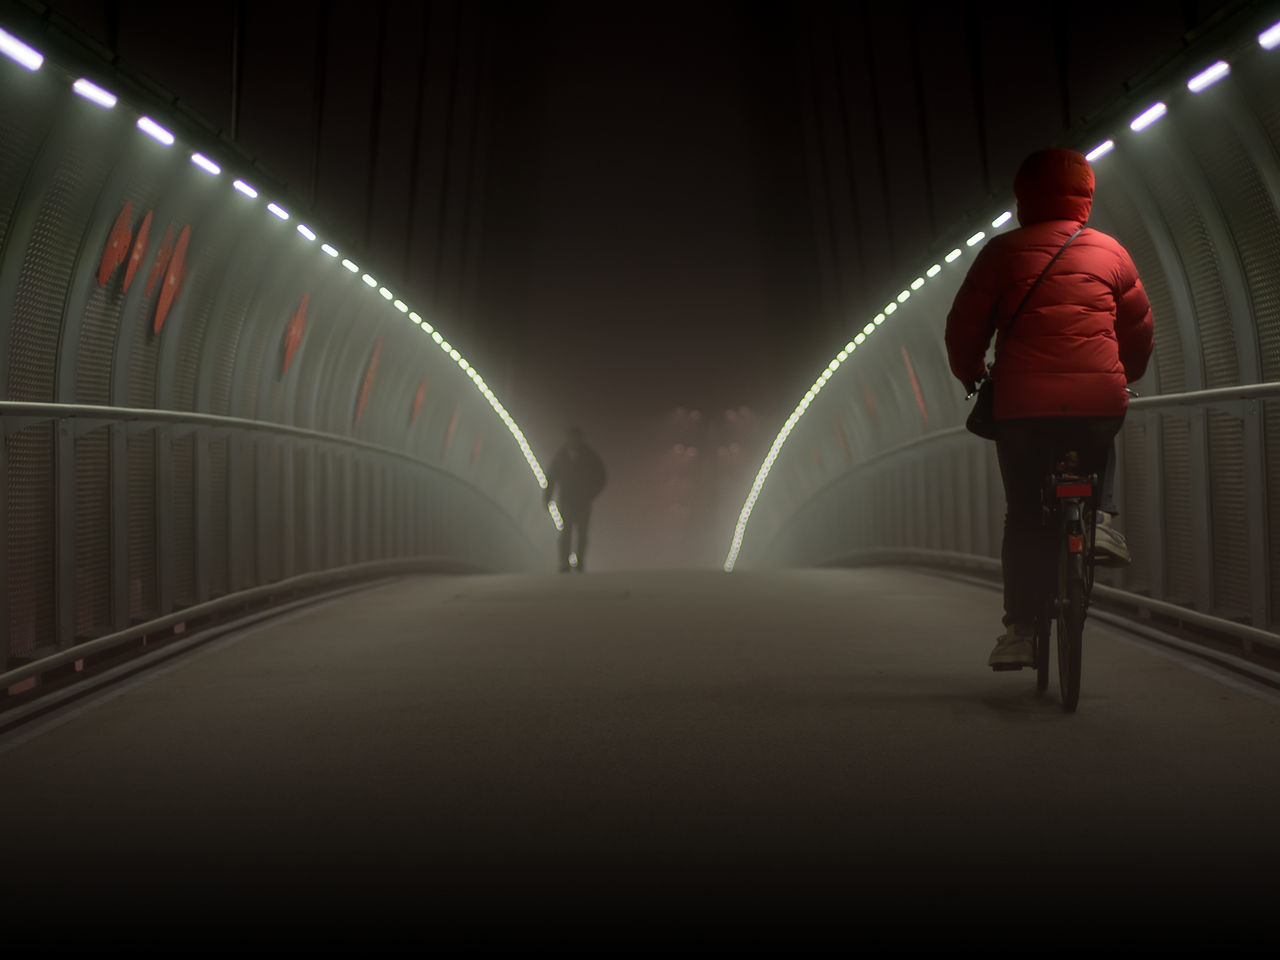 View Of Man In Illuminated Tunnel